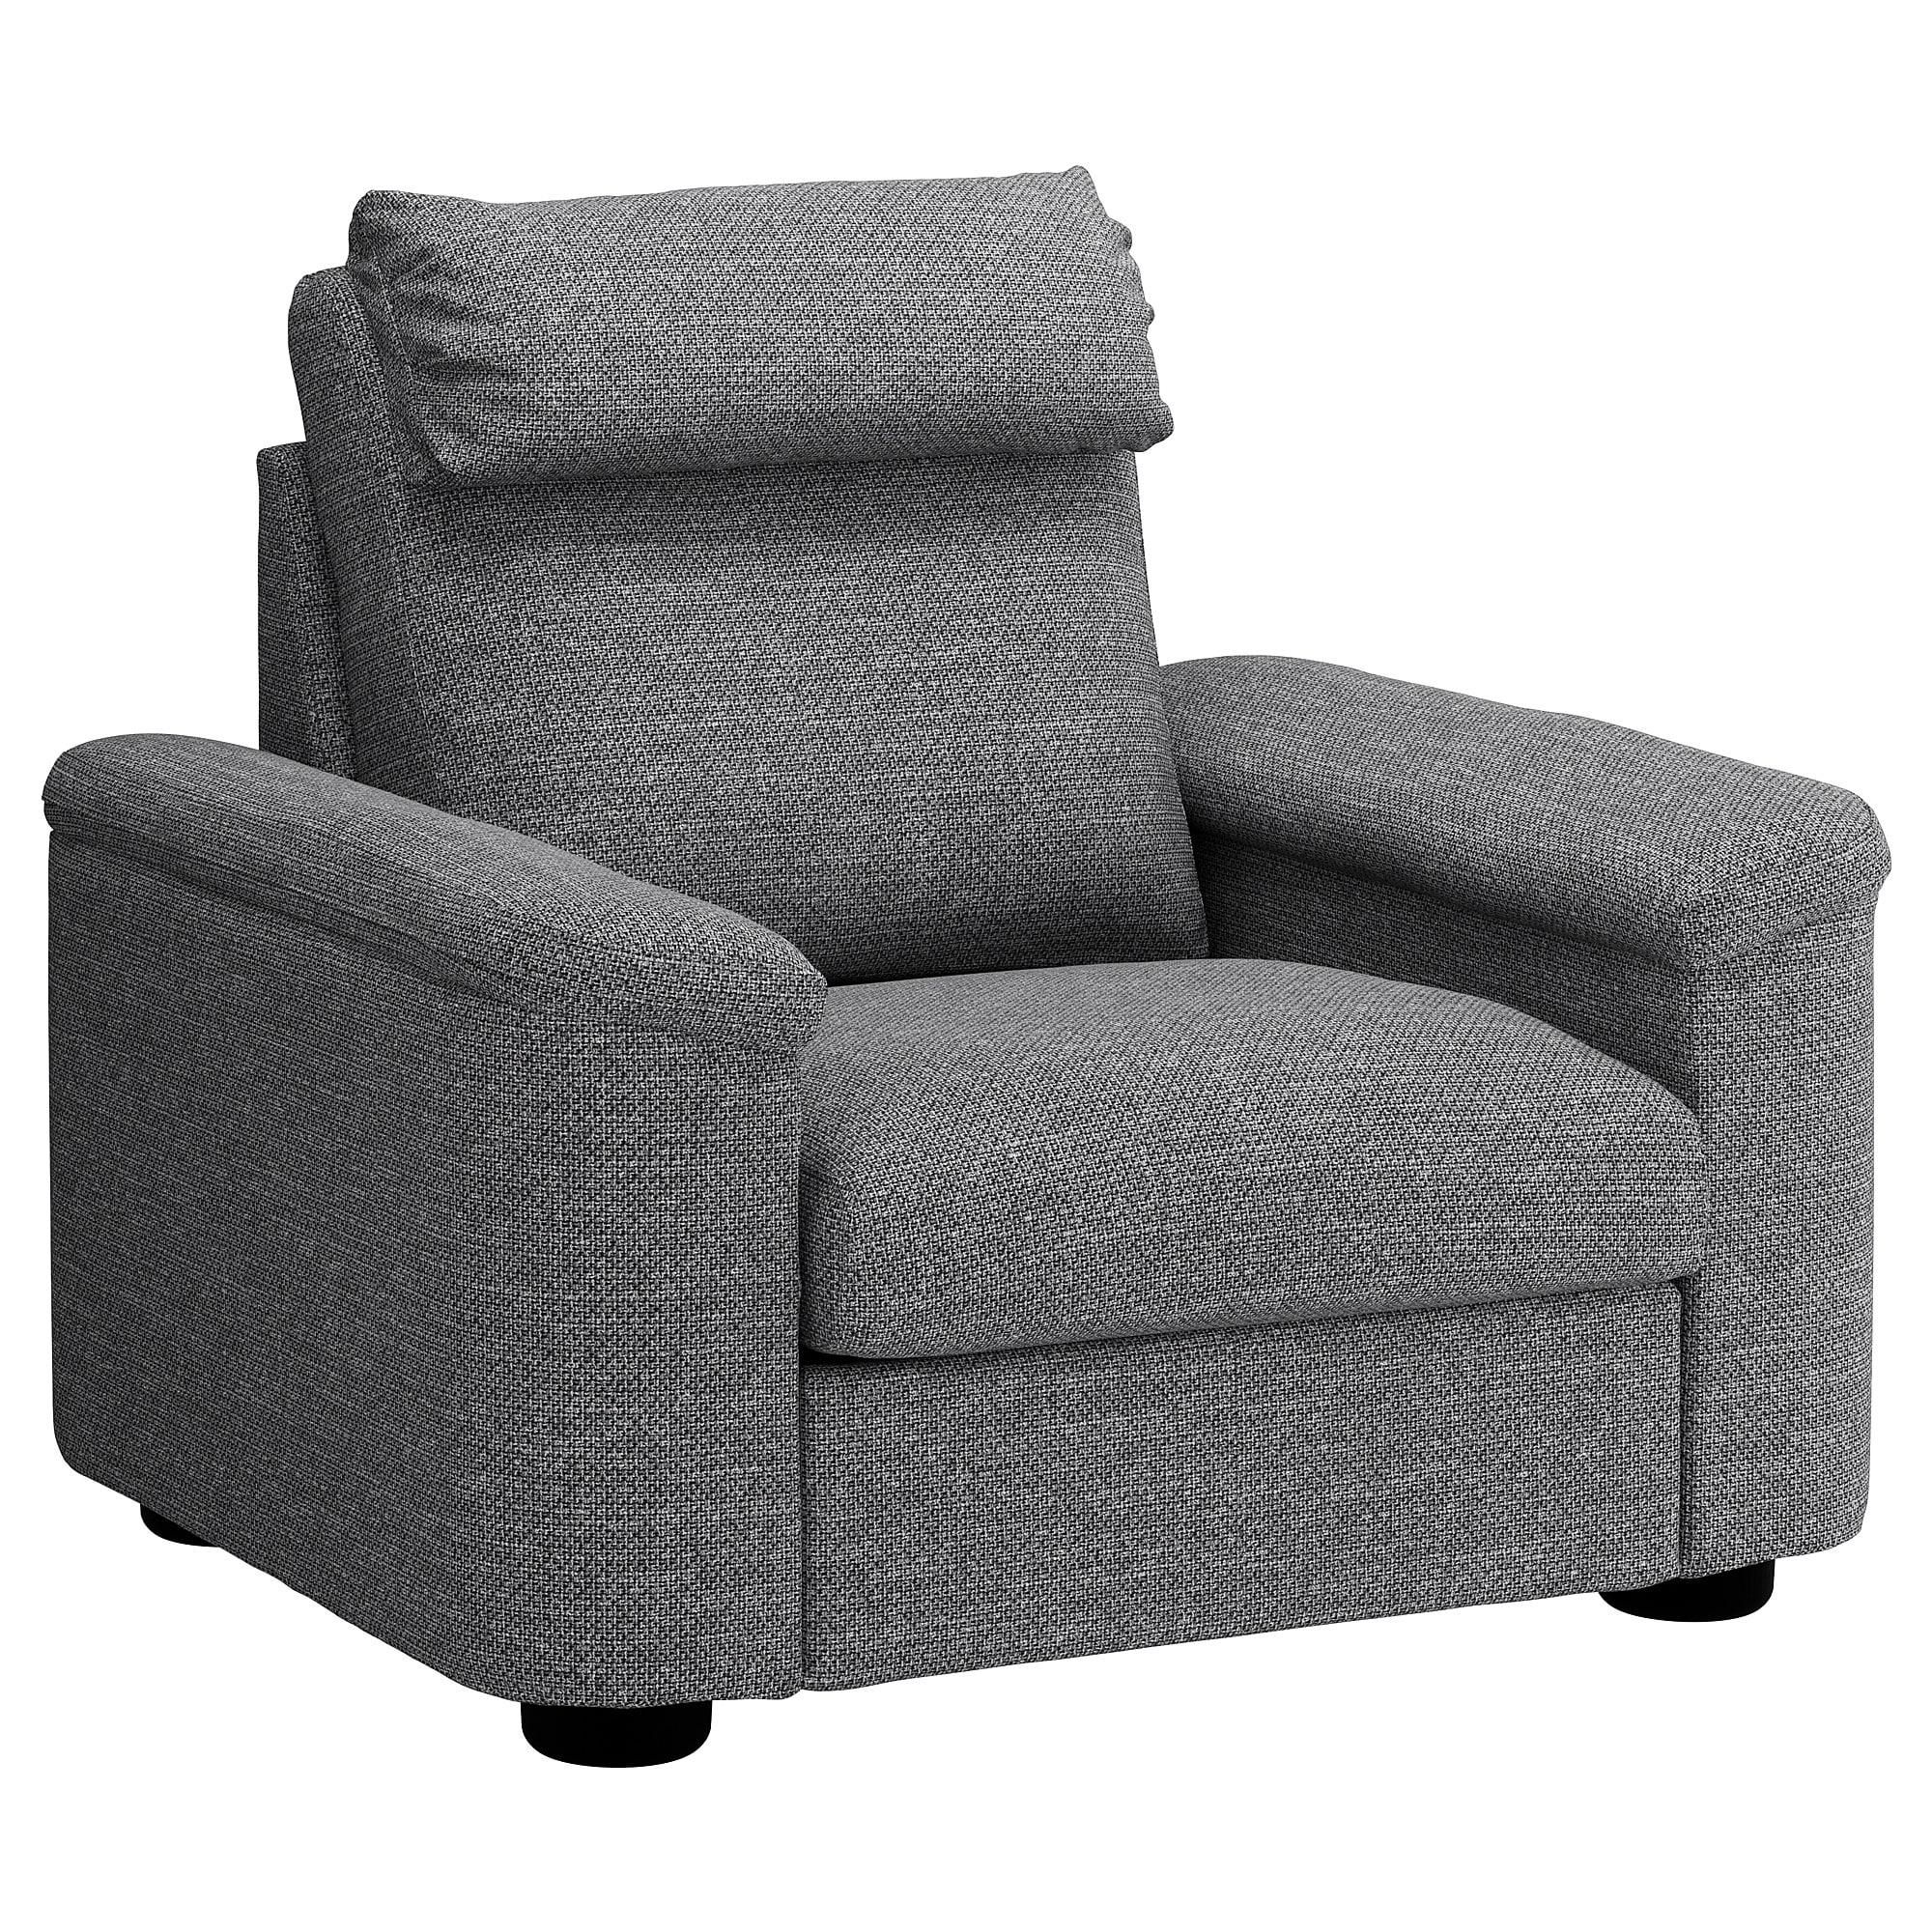 Ikea With Most Popular Sofa Chair Recliner (View 8 of 20)